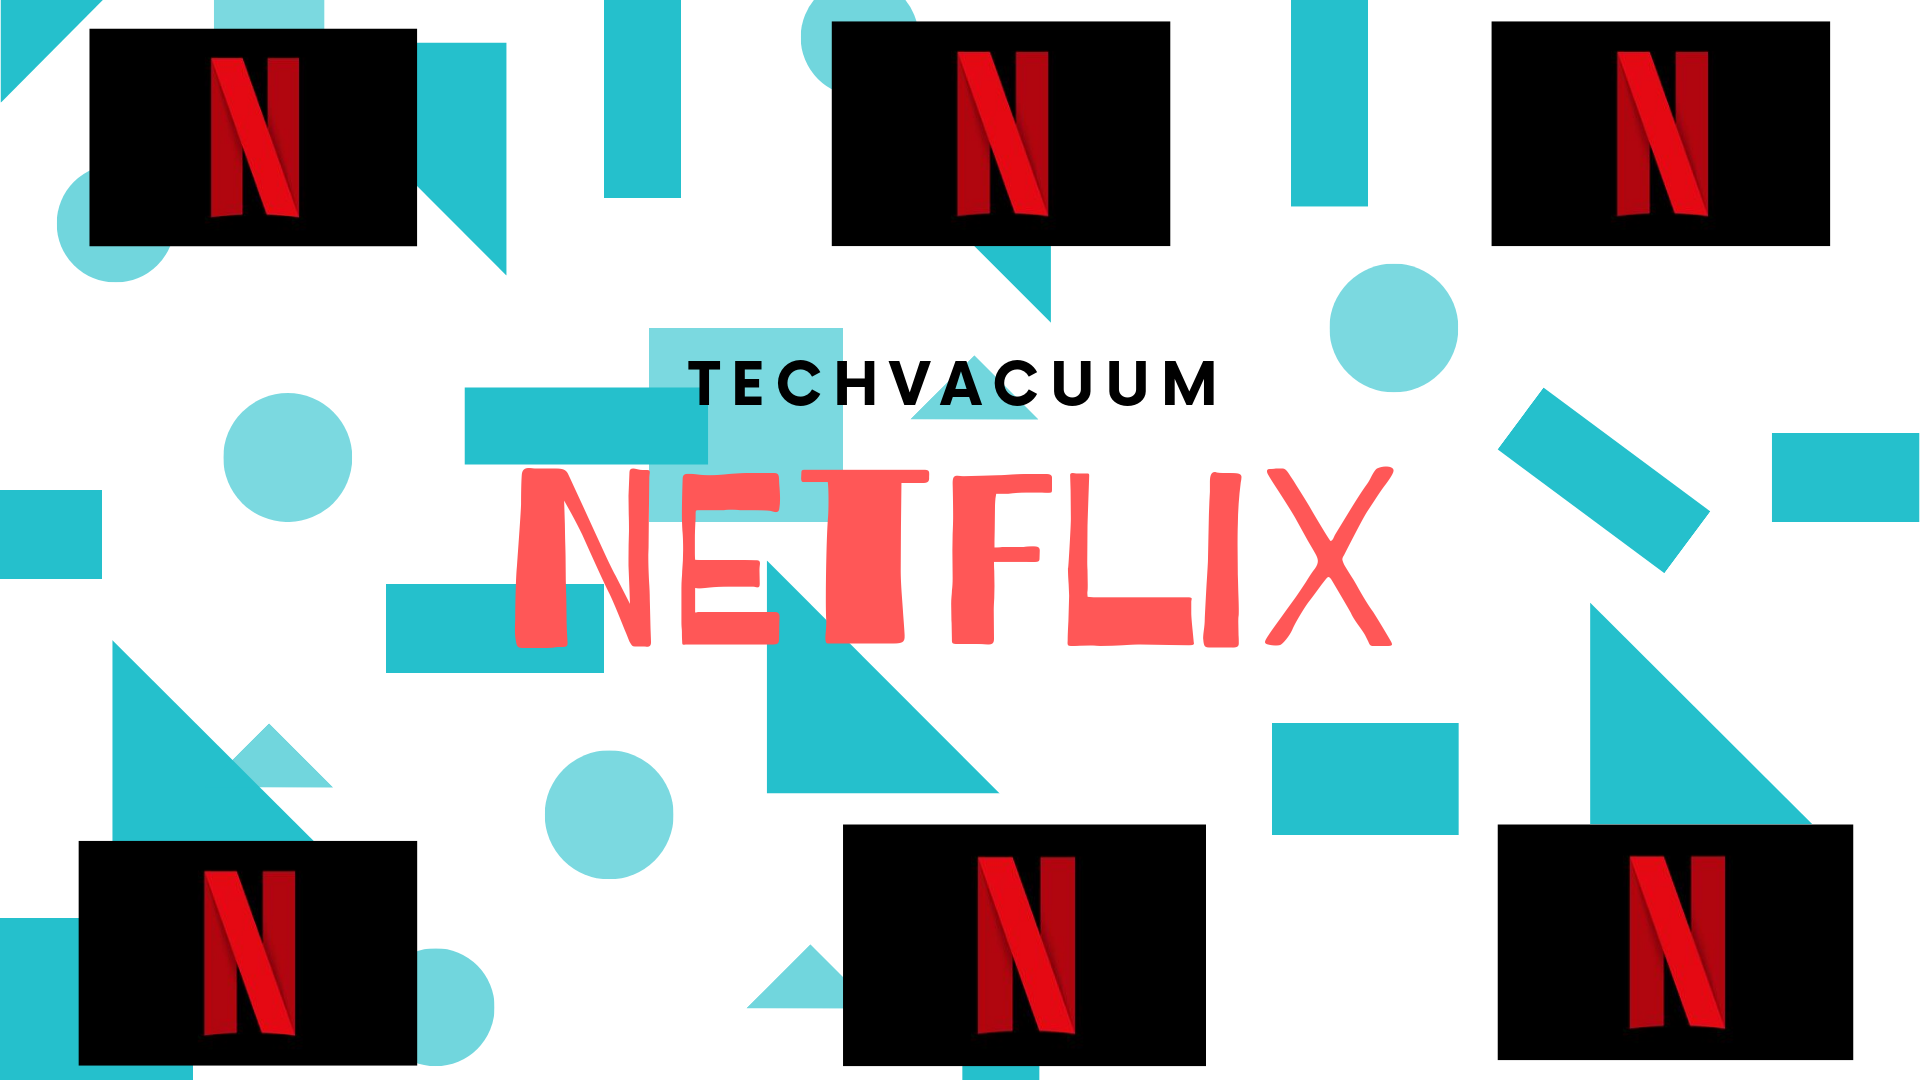 Free Netflix Account Generator If You Love To Watch Movies Pictures By Tech Vacuum Medium